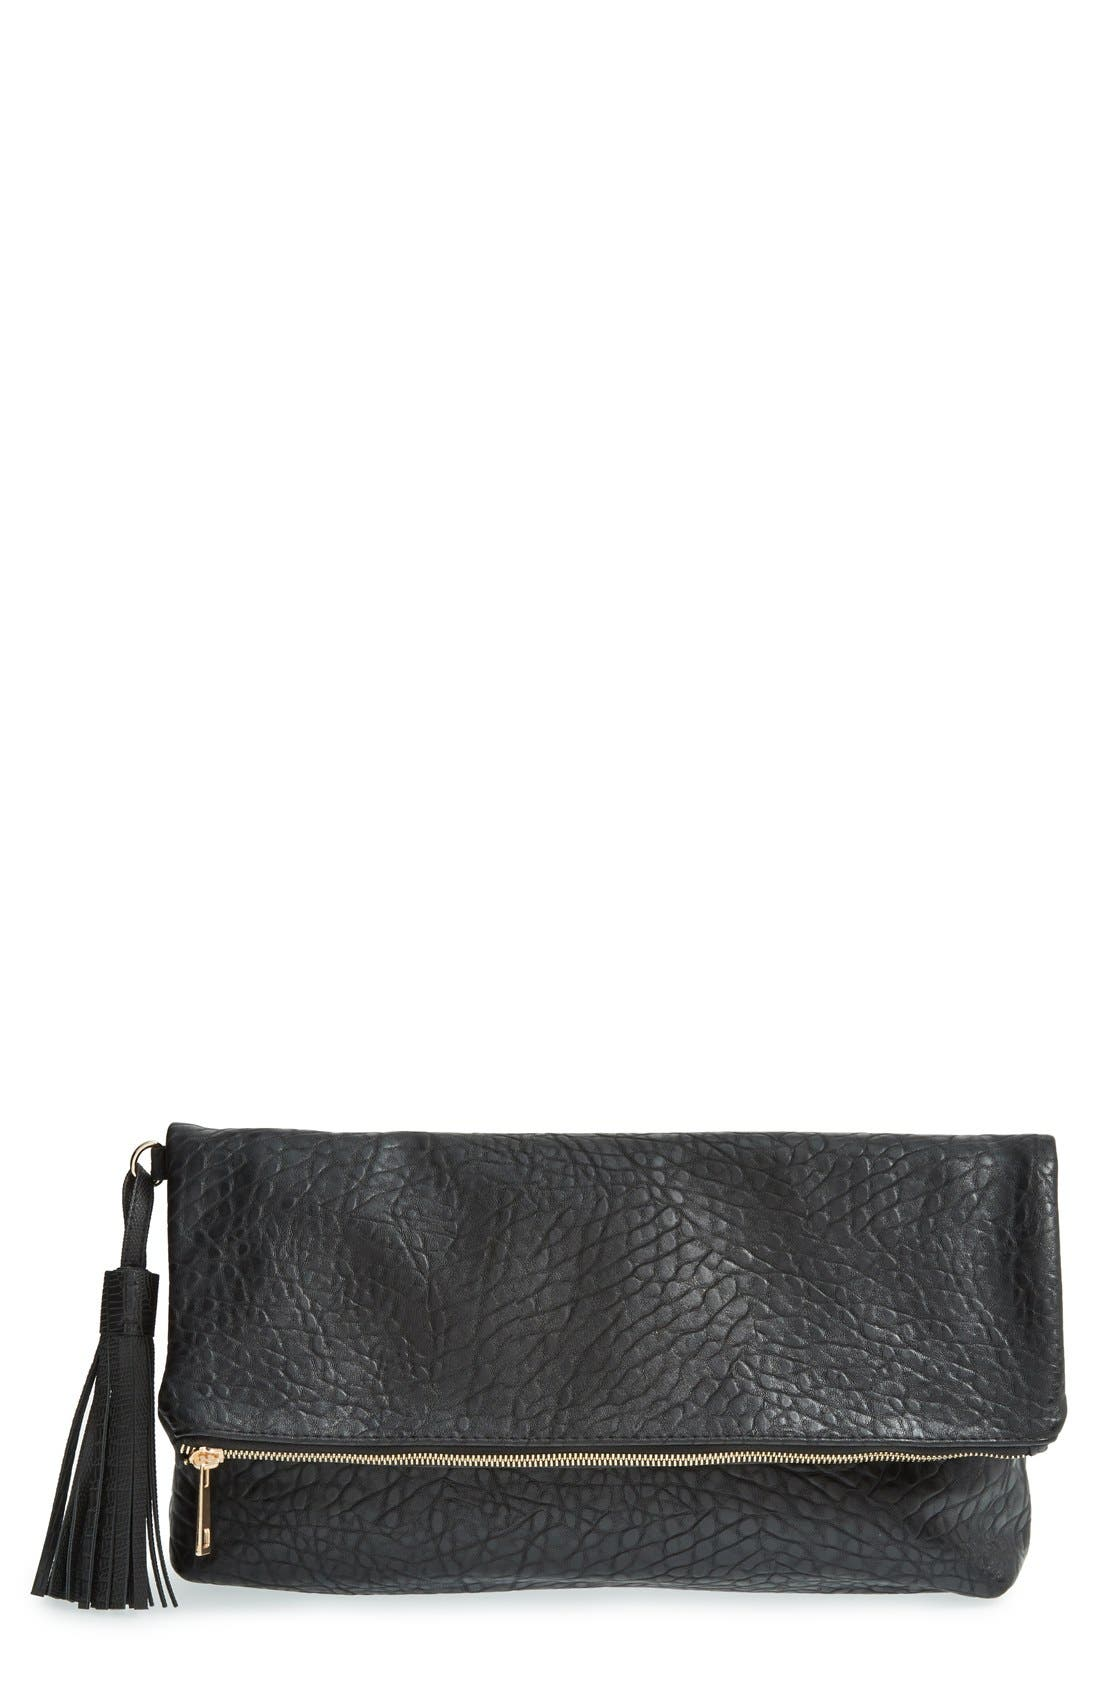 Alternate Image 1 Selected - Topshop 'Merino' Faux Leather Foldover Clutch